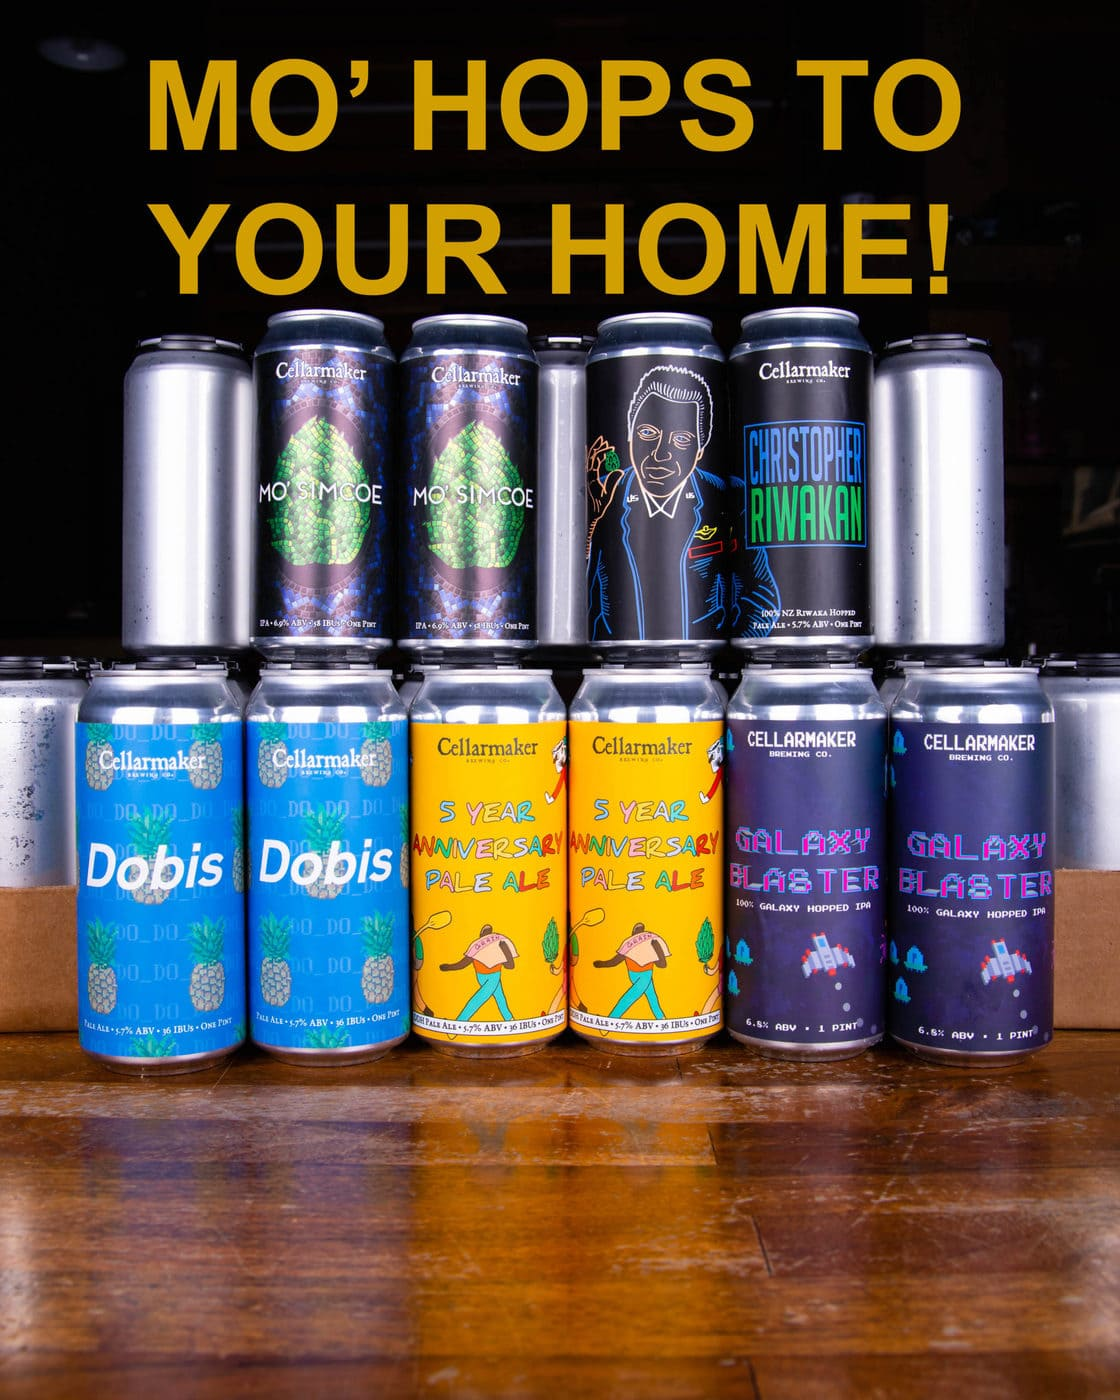 "DRINK MO' Pale Ale Mo' CANS! ""Galaxy Blaster"" IPA, ""Mo' Simcoe"" IPA, ""Christopher Riwakan"" Pale Ale, ""Dobis"" Pale Ale, & ""5 Year"" Pale Ale ~ SOLD OUT"